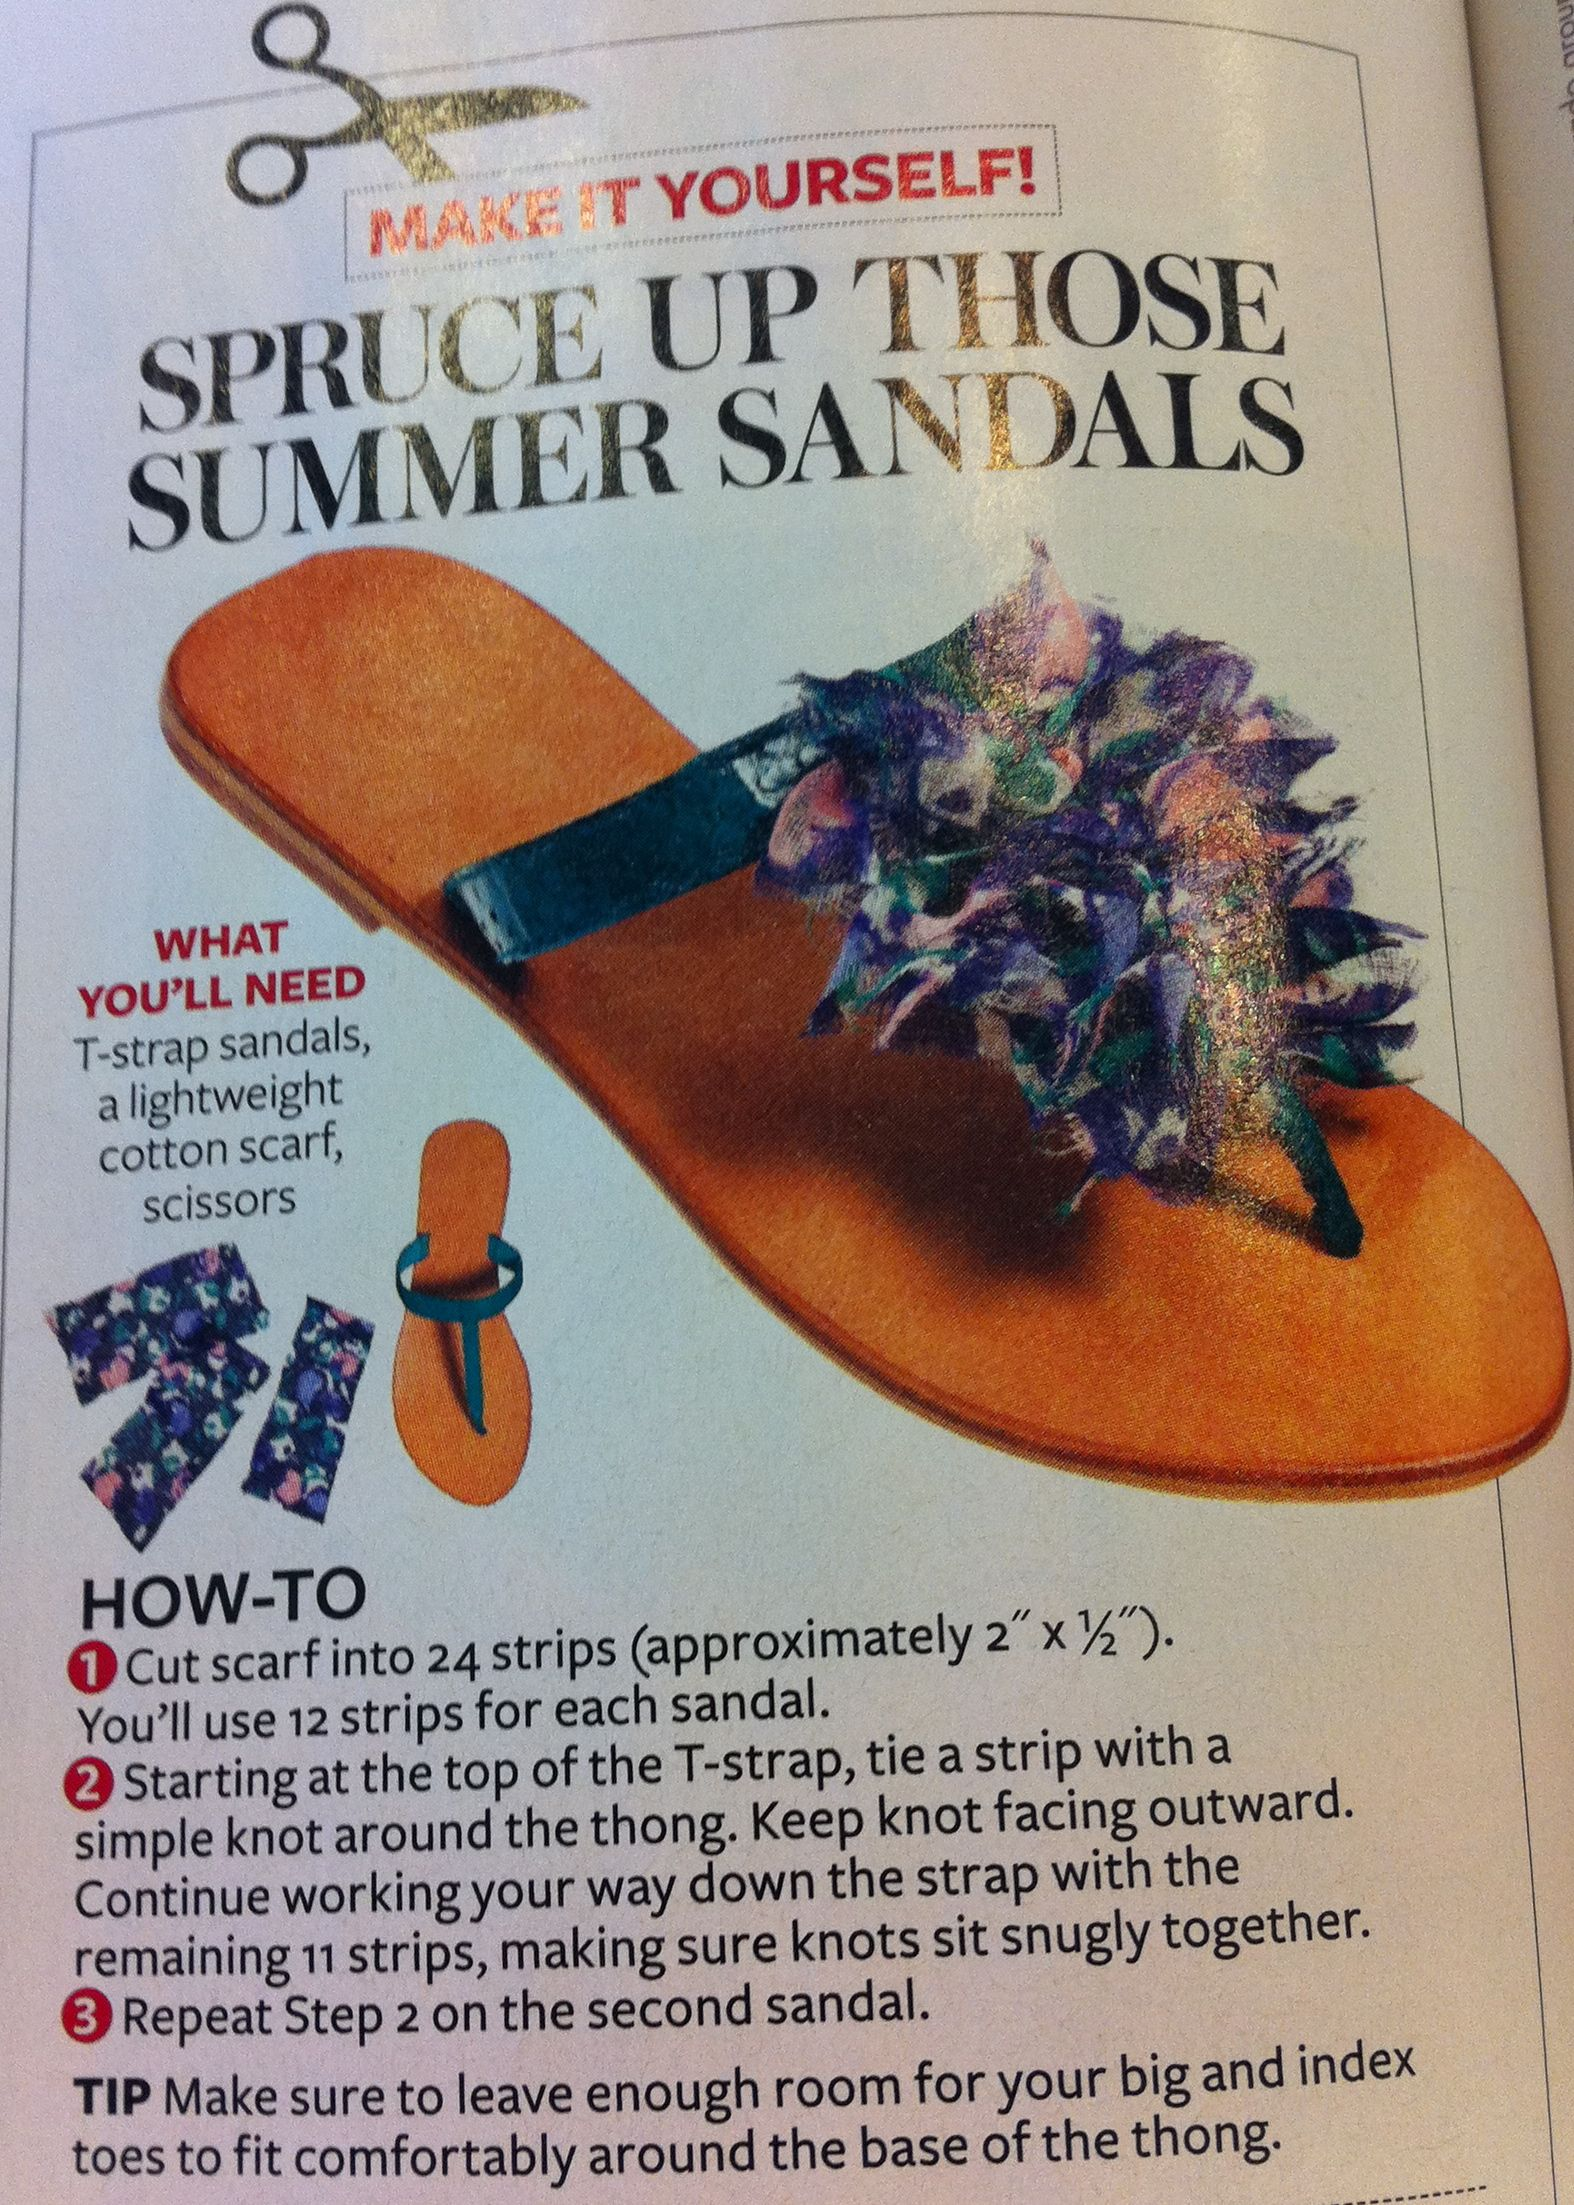 DIY sandals. Re-fashion last year's or cheap clearance find sandals